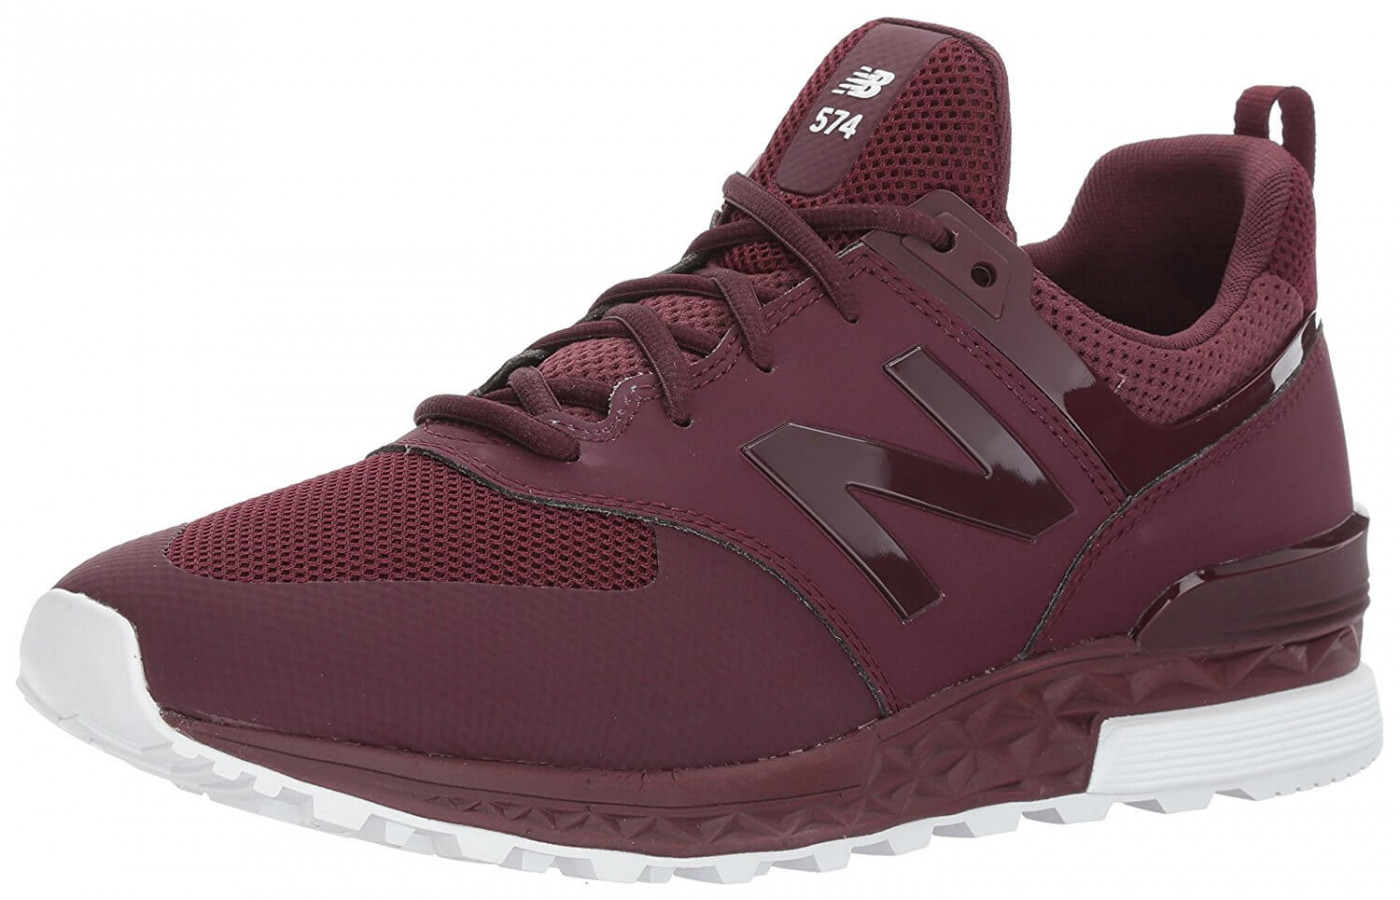 premium selection 9da08 8eeb0 New Balance 574 Sport